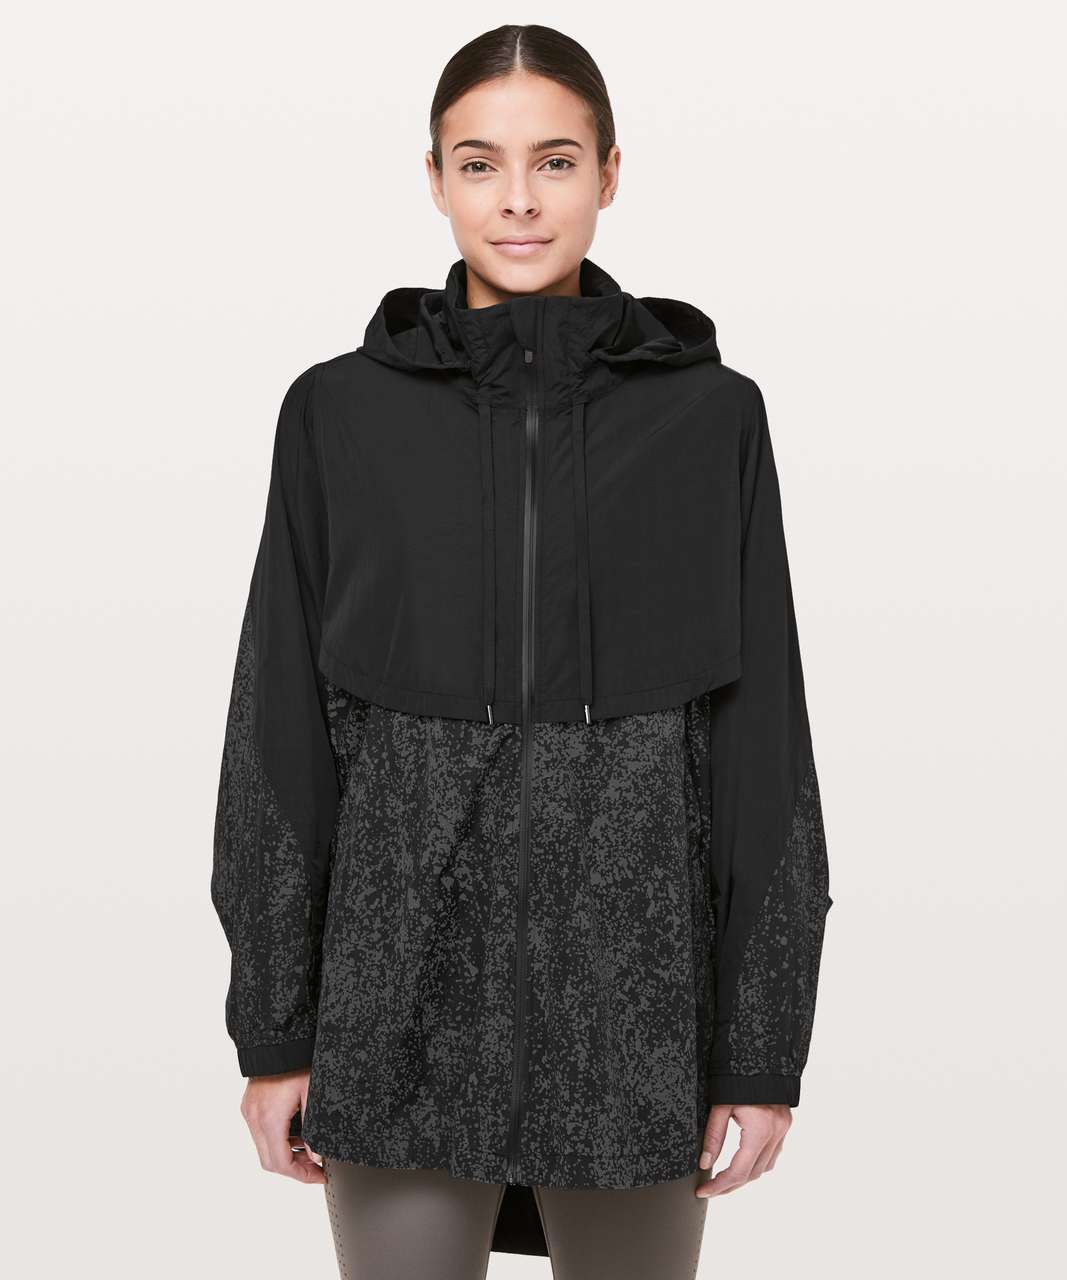 Lululemon Ride & Reflect Jacket *lululemon X SoulCycle - Black